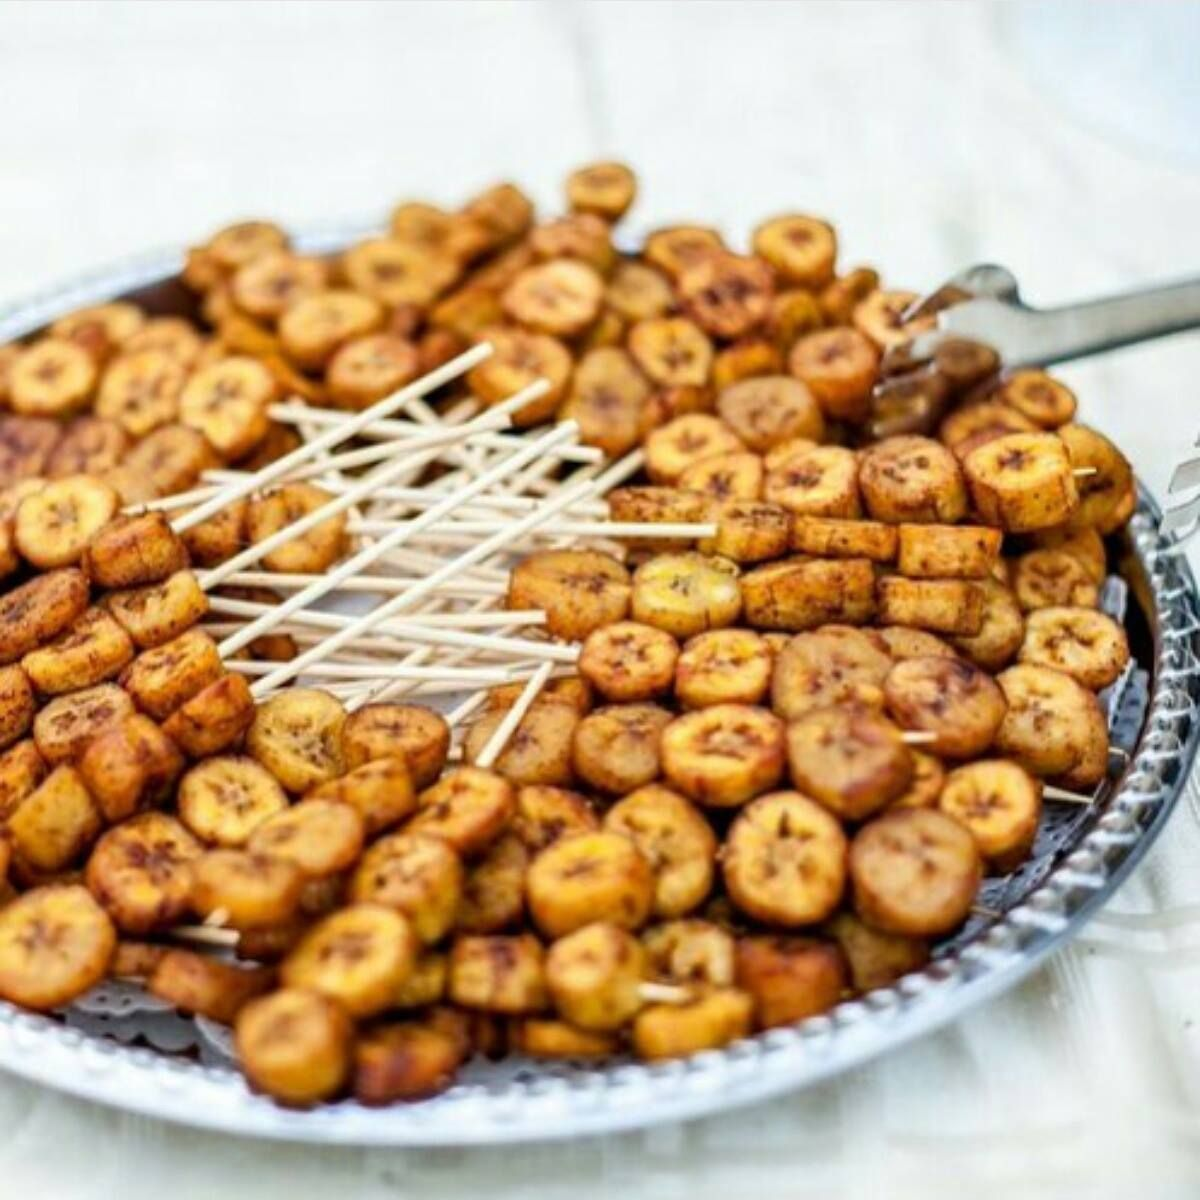 Afrikanische Küche Rezepte Spic Fried Plantains On A Stick Kelewele On Sticks